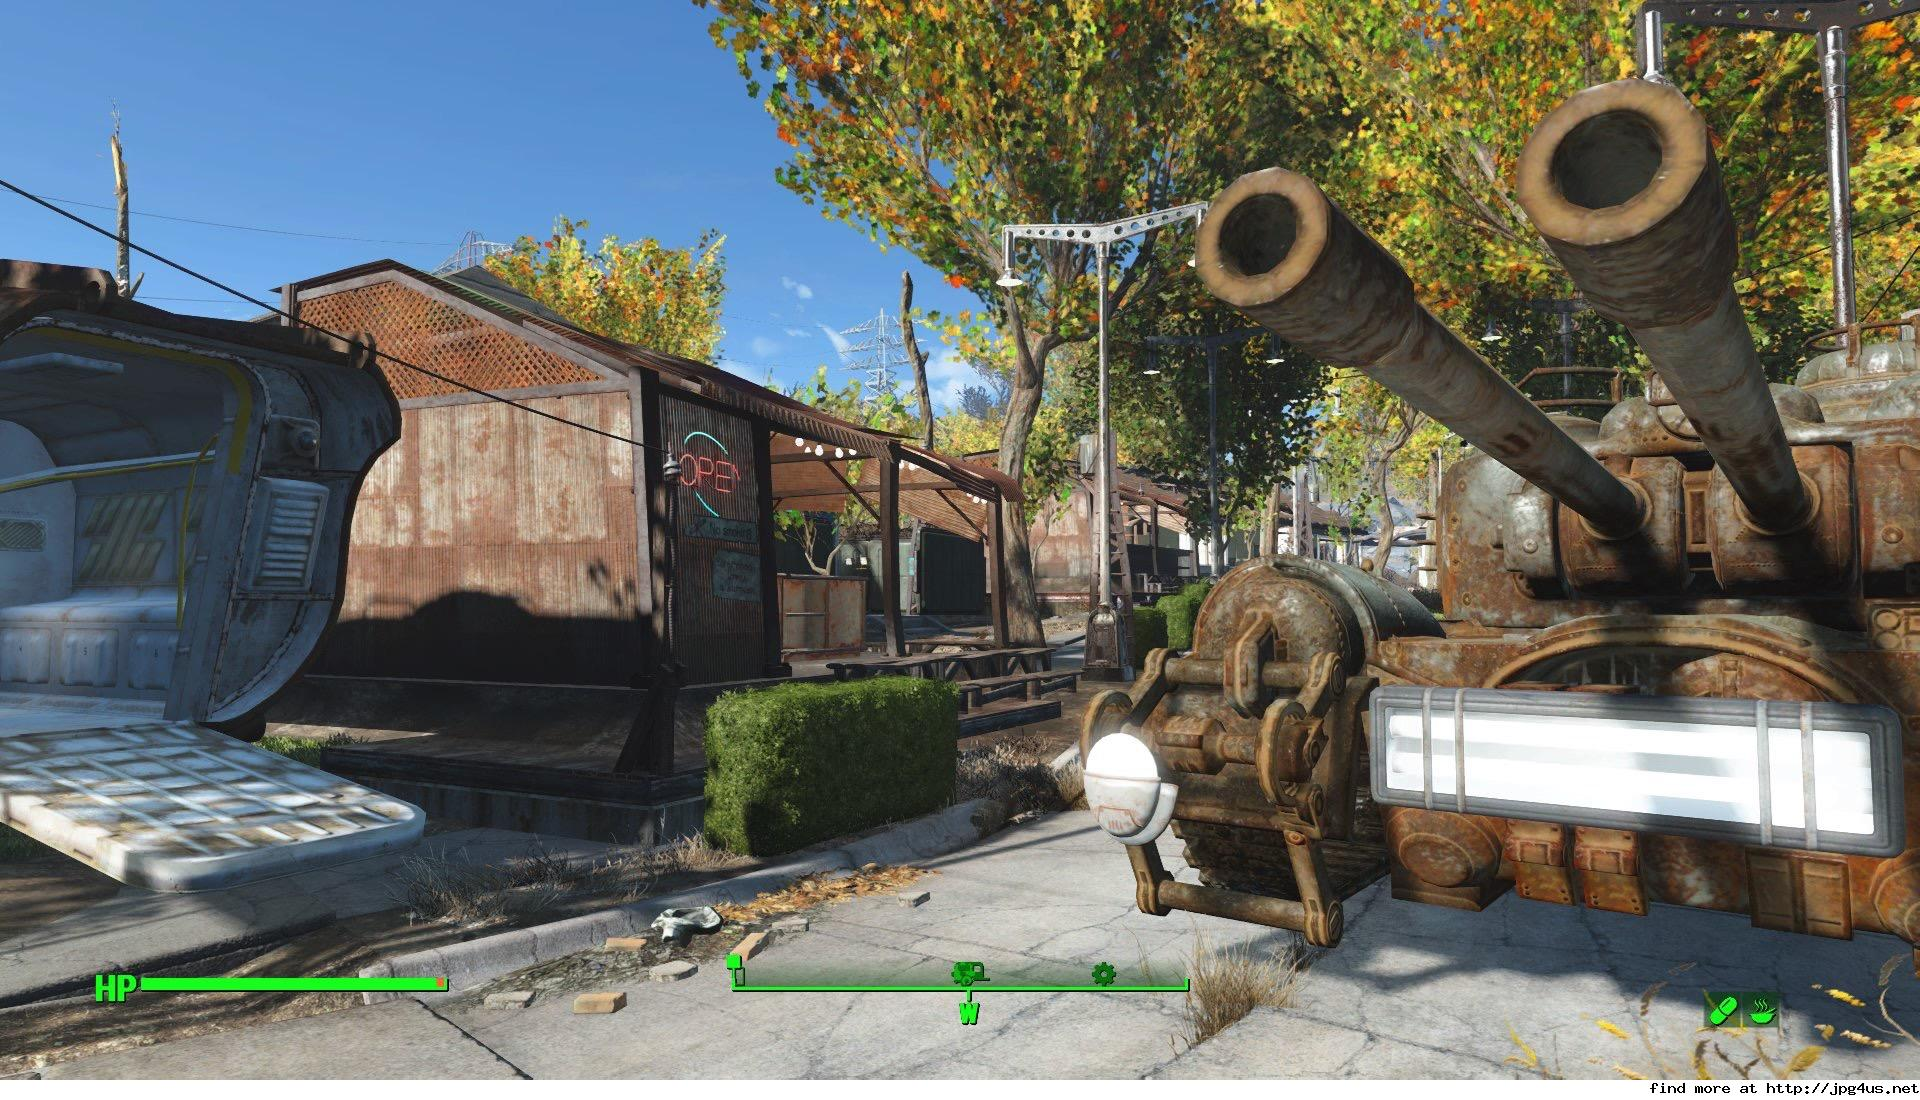 【FO4】Fallout4 拠点画像うpスレ 5軒目 [無断転載禁止]©2ch.netYouTube動画>6本 ->画像>461枚